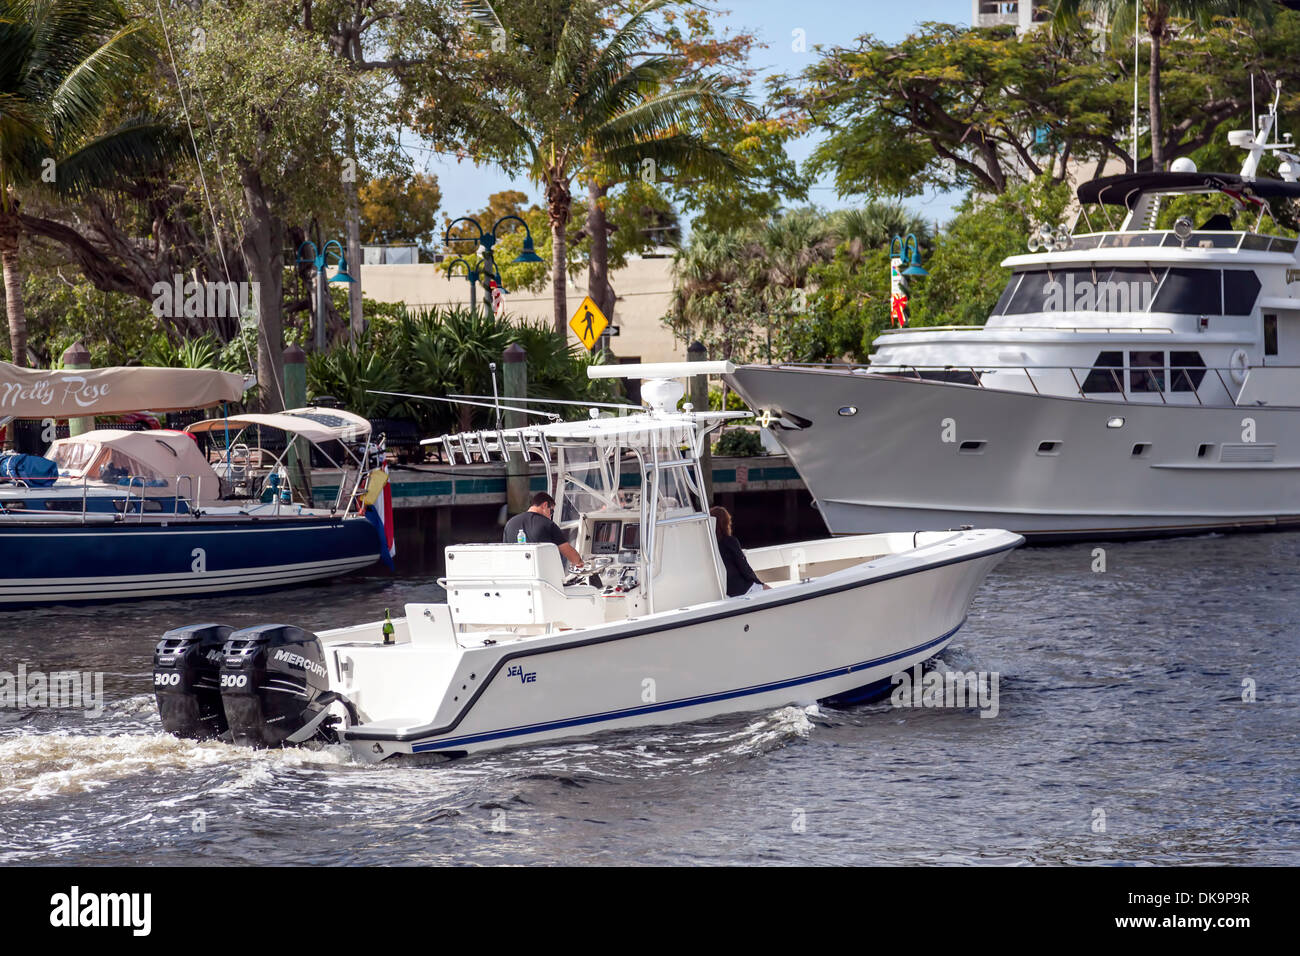 Couple cruising up the New River in a SeaVee 290 with dual Mercury 300 outboard motors, downtown Fort Lauderdale, Florida, USA. - Stock Image